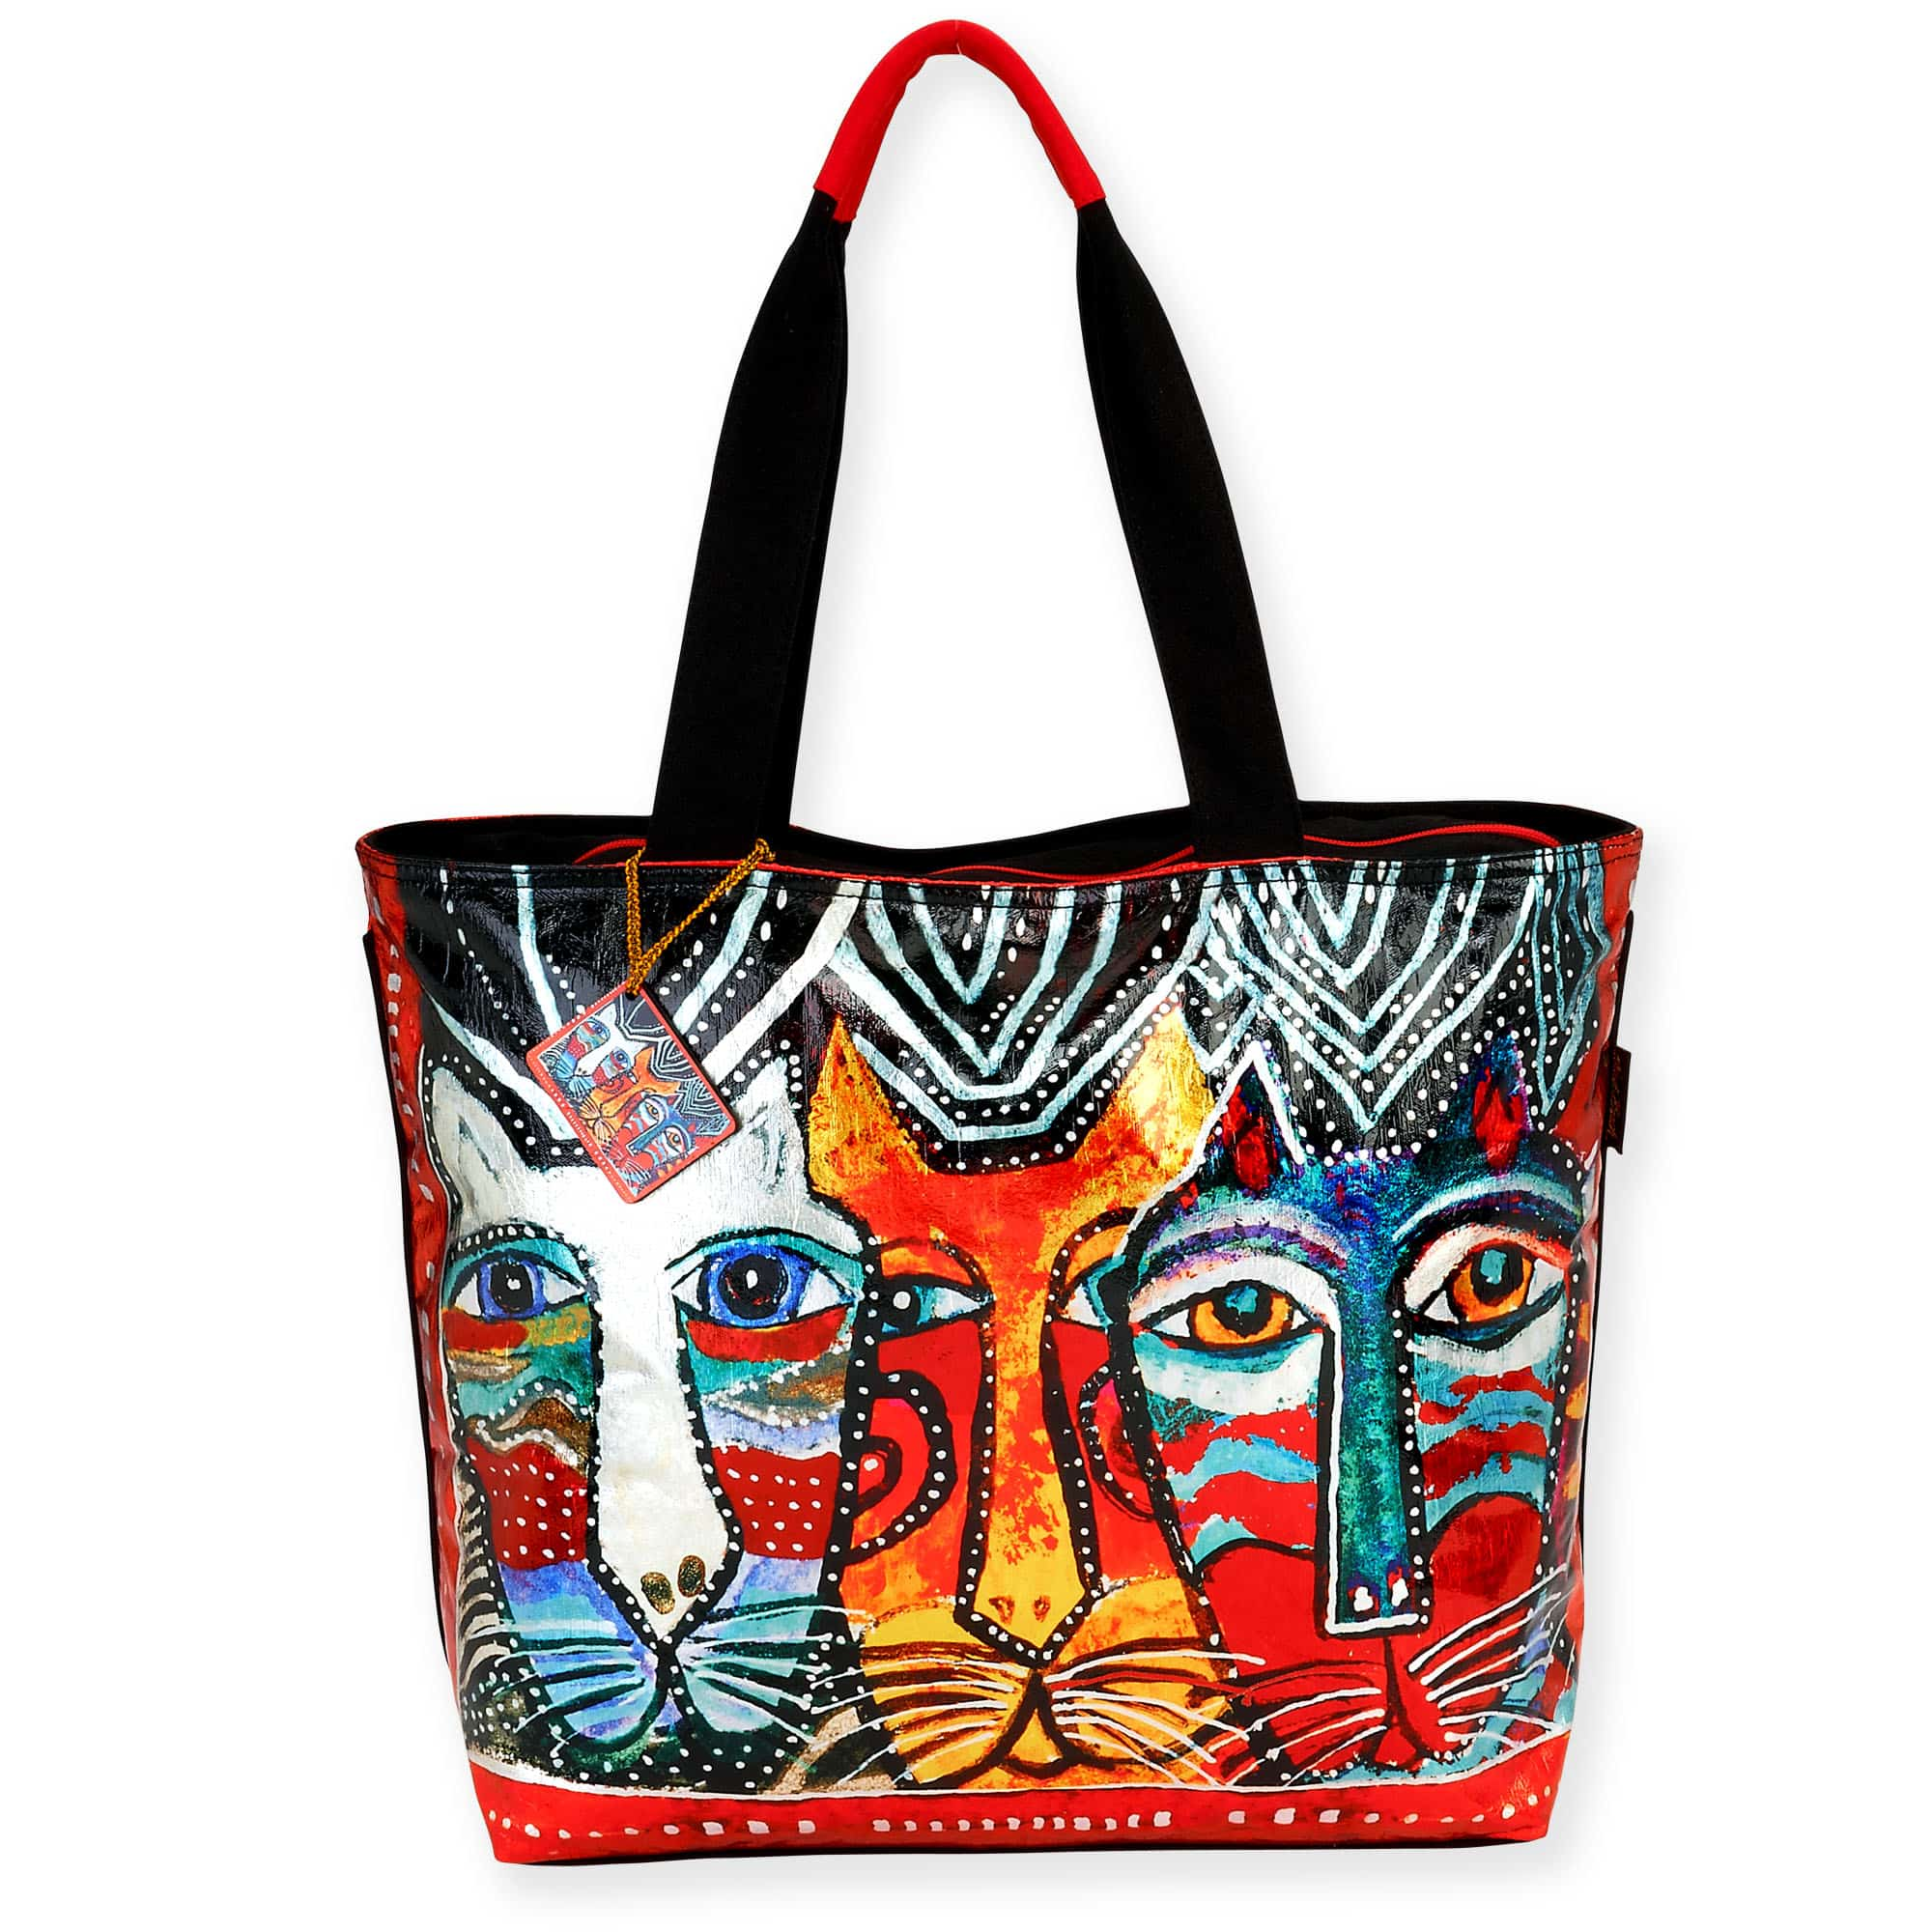 Gatos Shoulder Tote by Laurel Burch